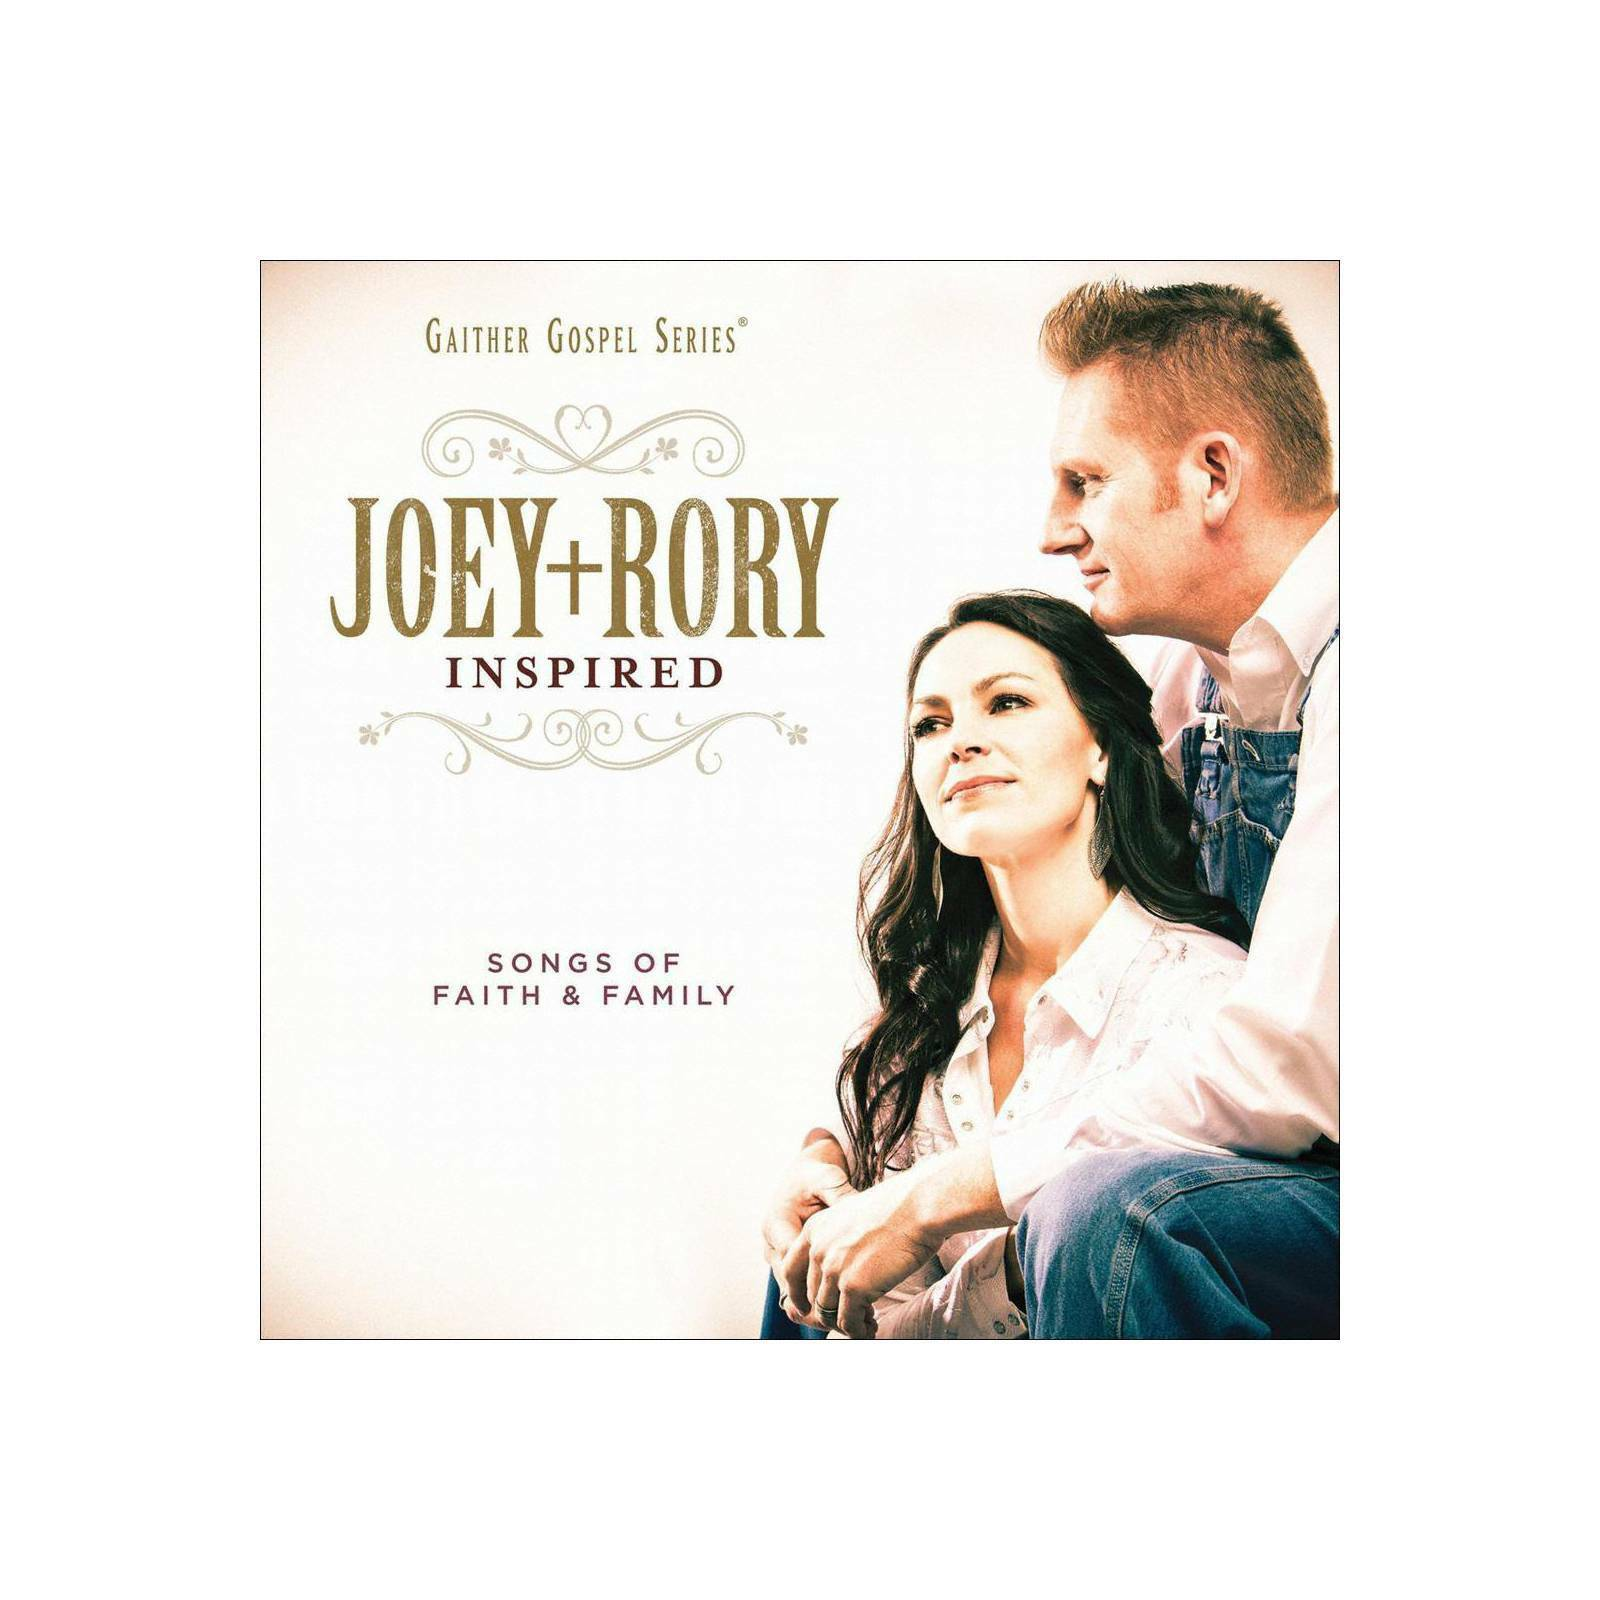 Joey Rory - Inspired CD 2013 Gaither Music Group Shd8776 MINT | eBay